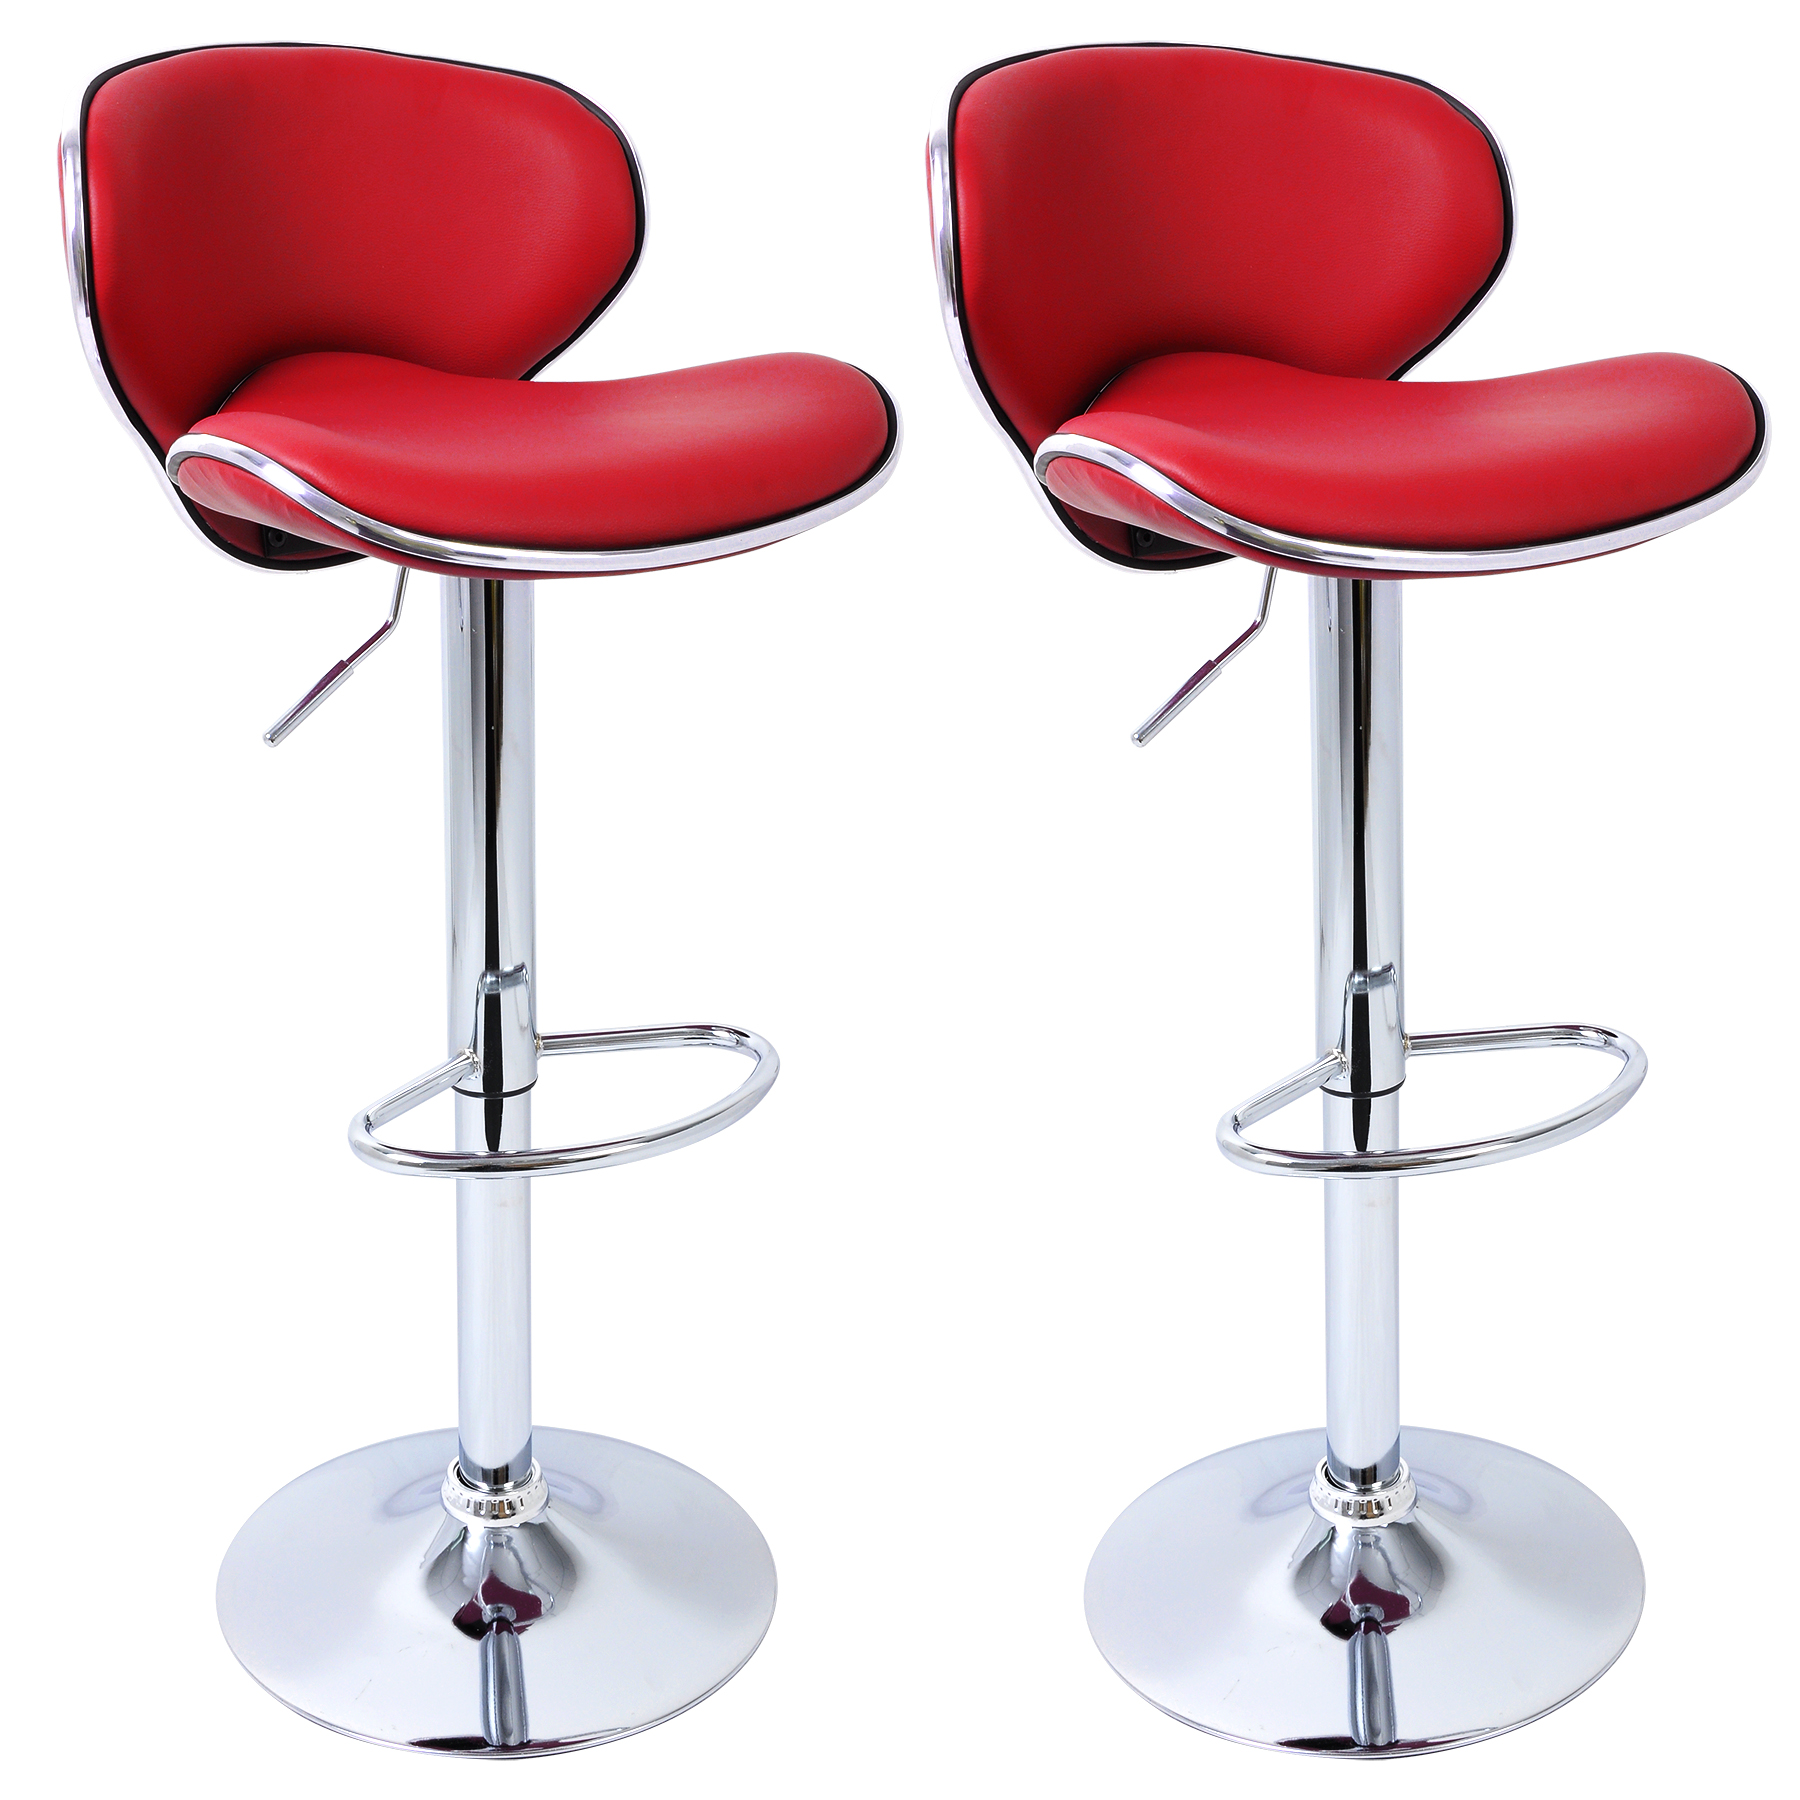 Bar Stools set of 21 Faux Leather Adjust Breakfast Chair  : BH19bd 2N1 from www.ebay.co.uk size 1800 x 1800 jpeg 1193kB